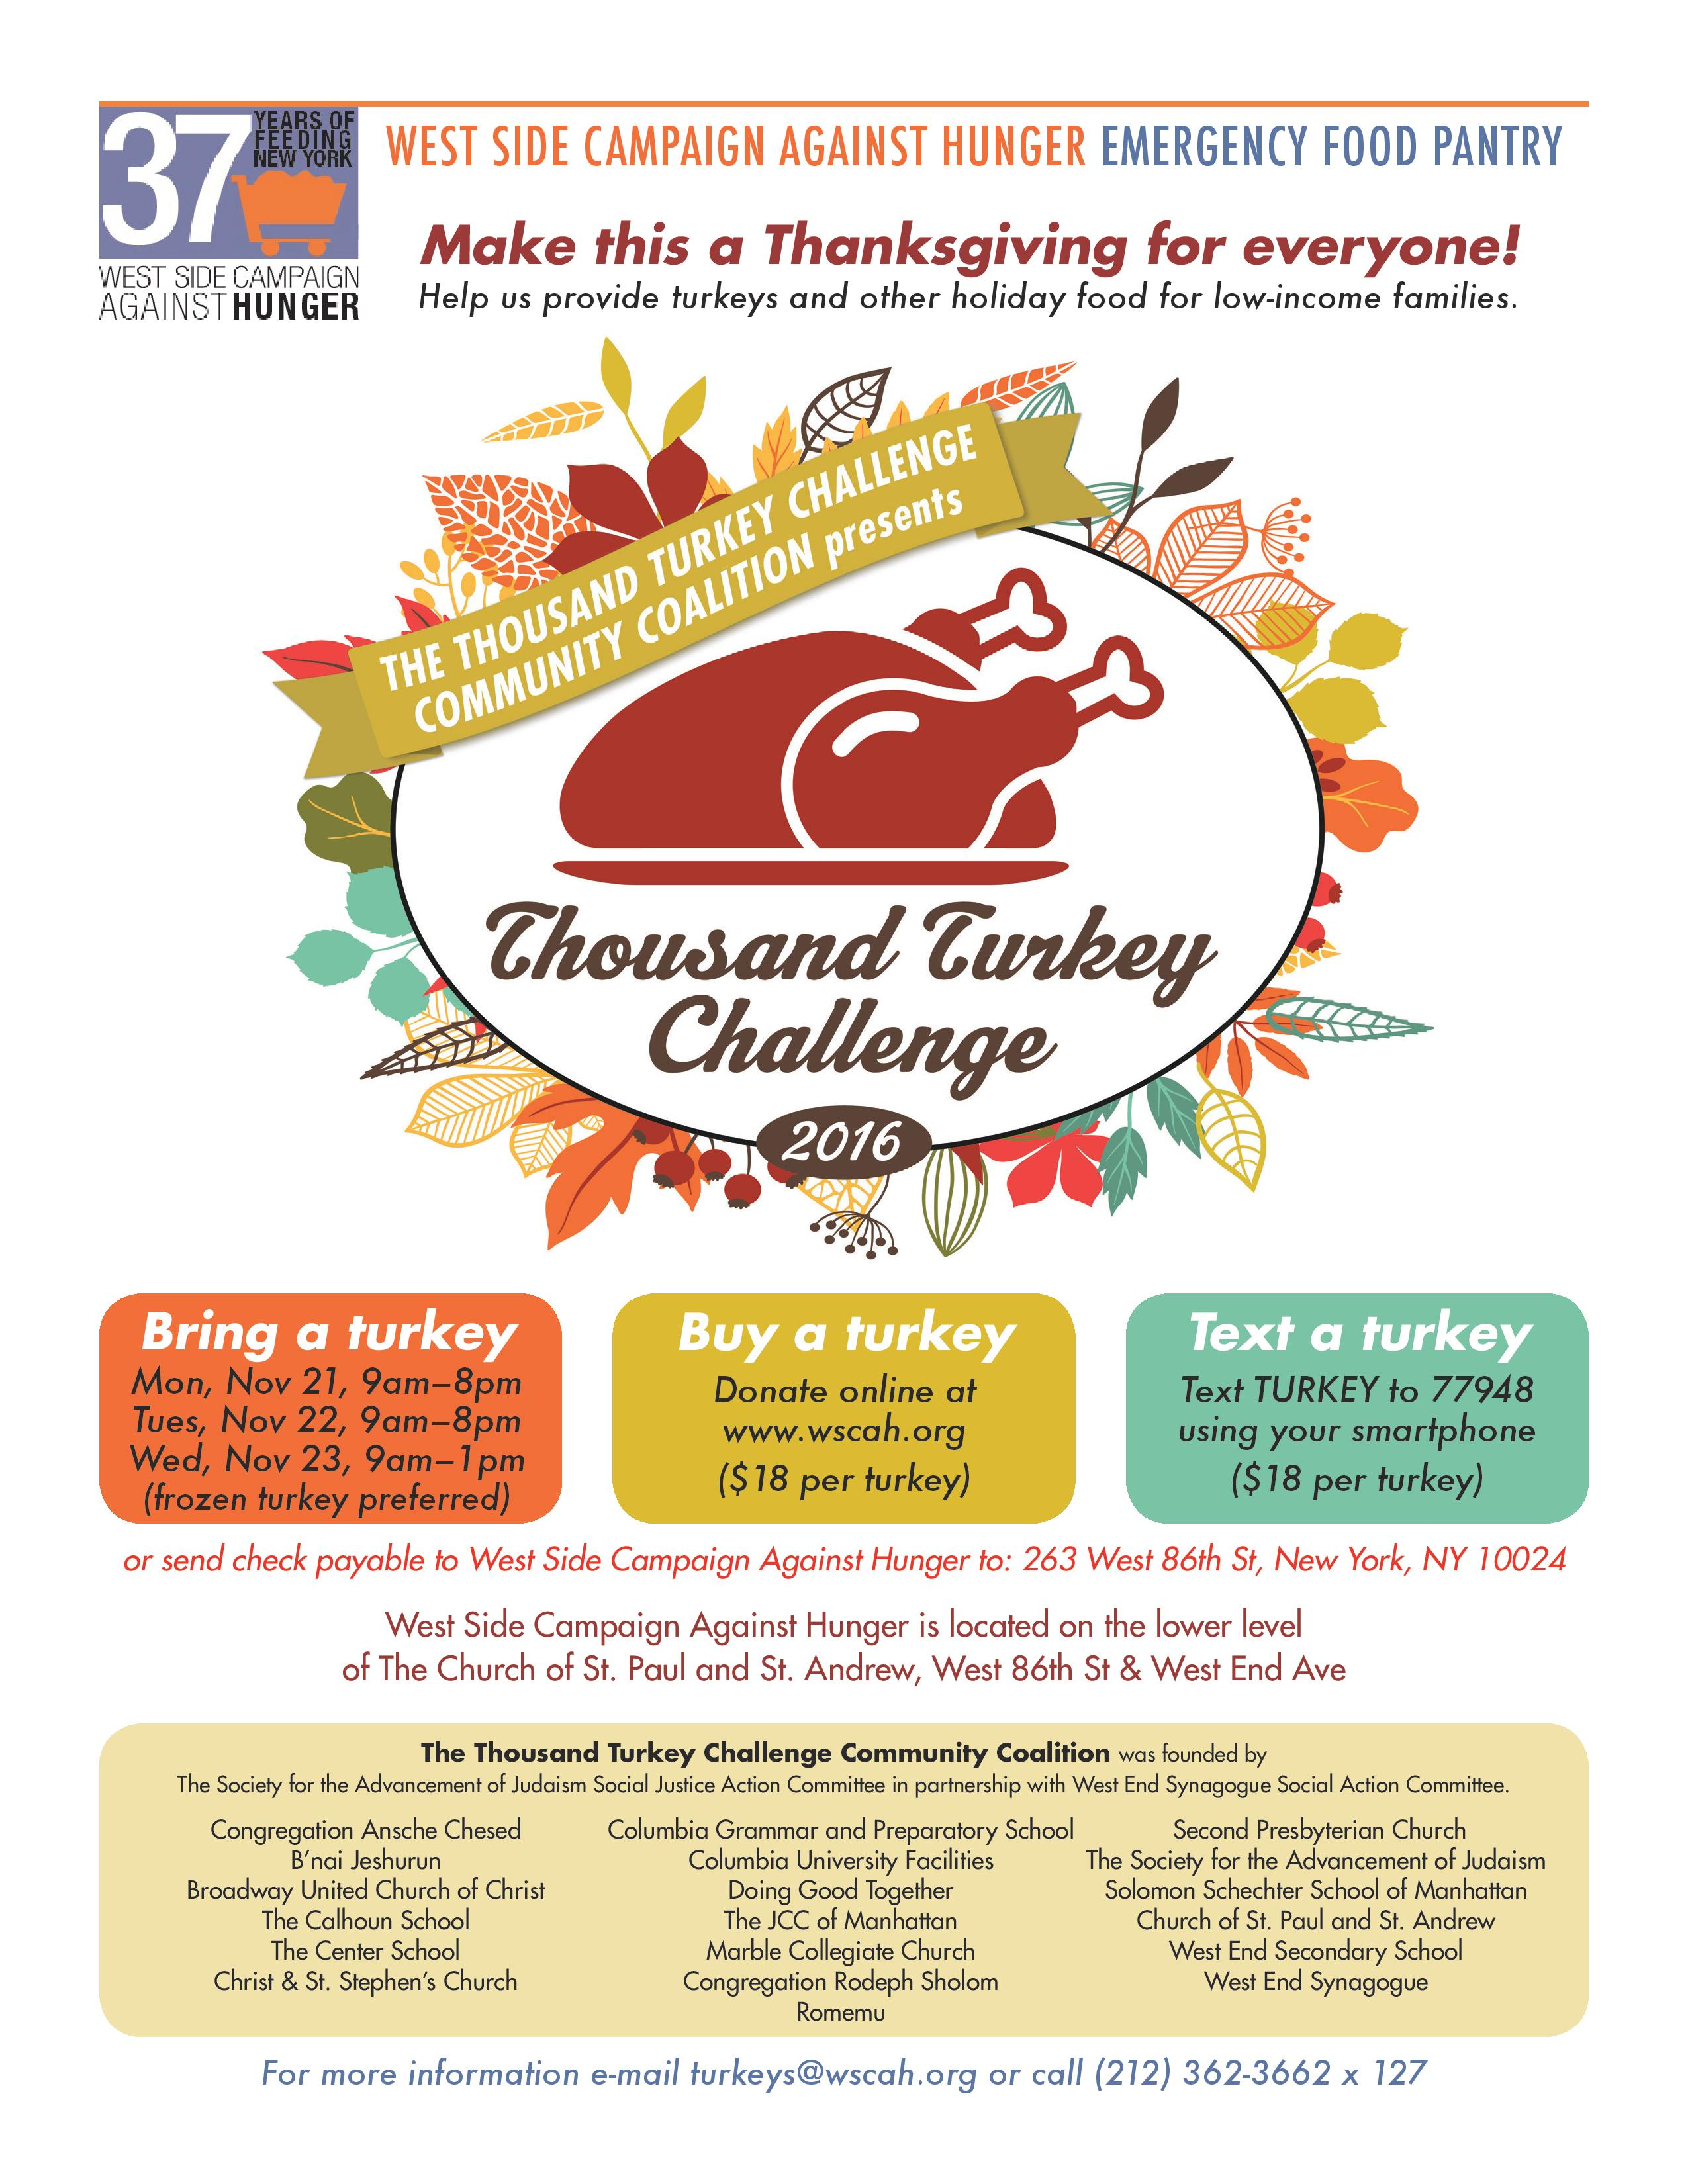 Thousand Turkey Challenge